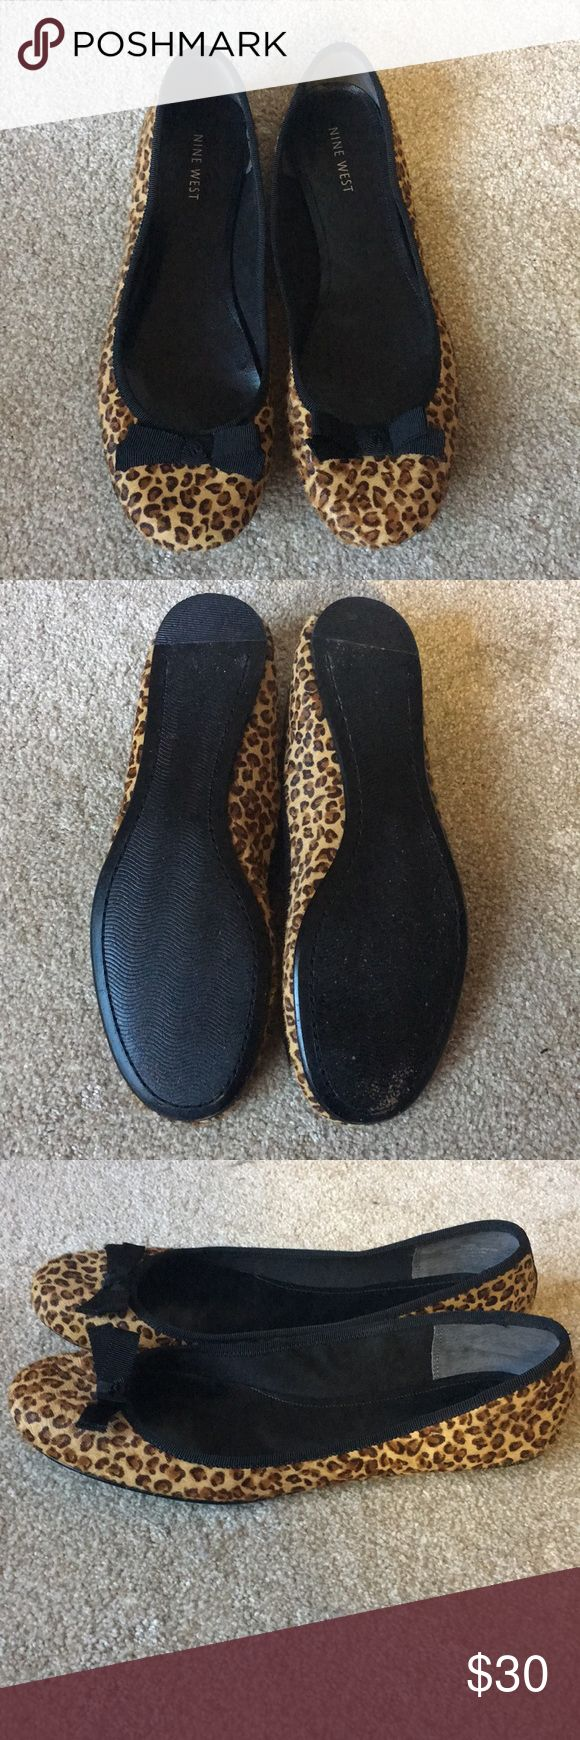 Nine West flats Rarely worn like new shoe. real fur cheetah print flats. Black bow on the front. Nine West Shoes Flats & Loafers